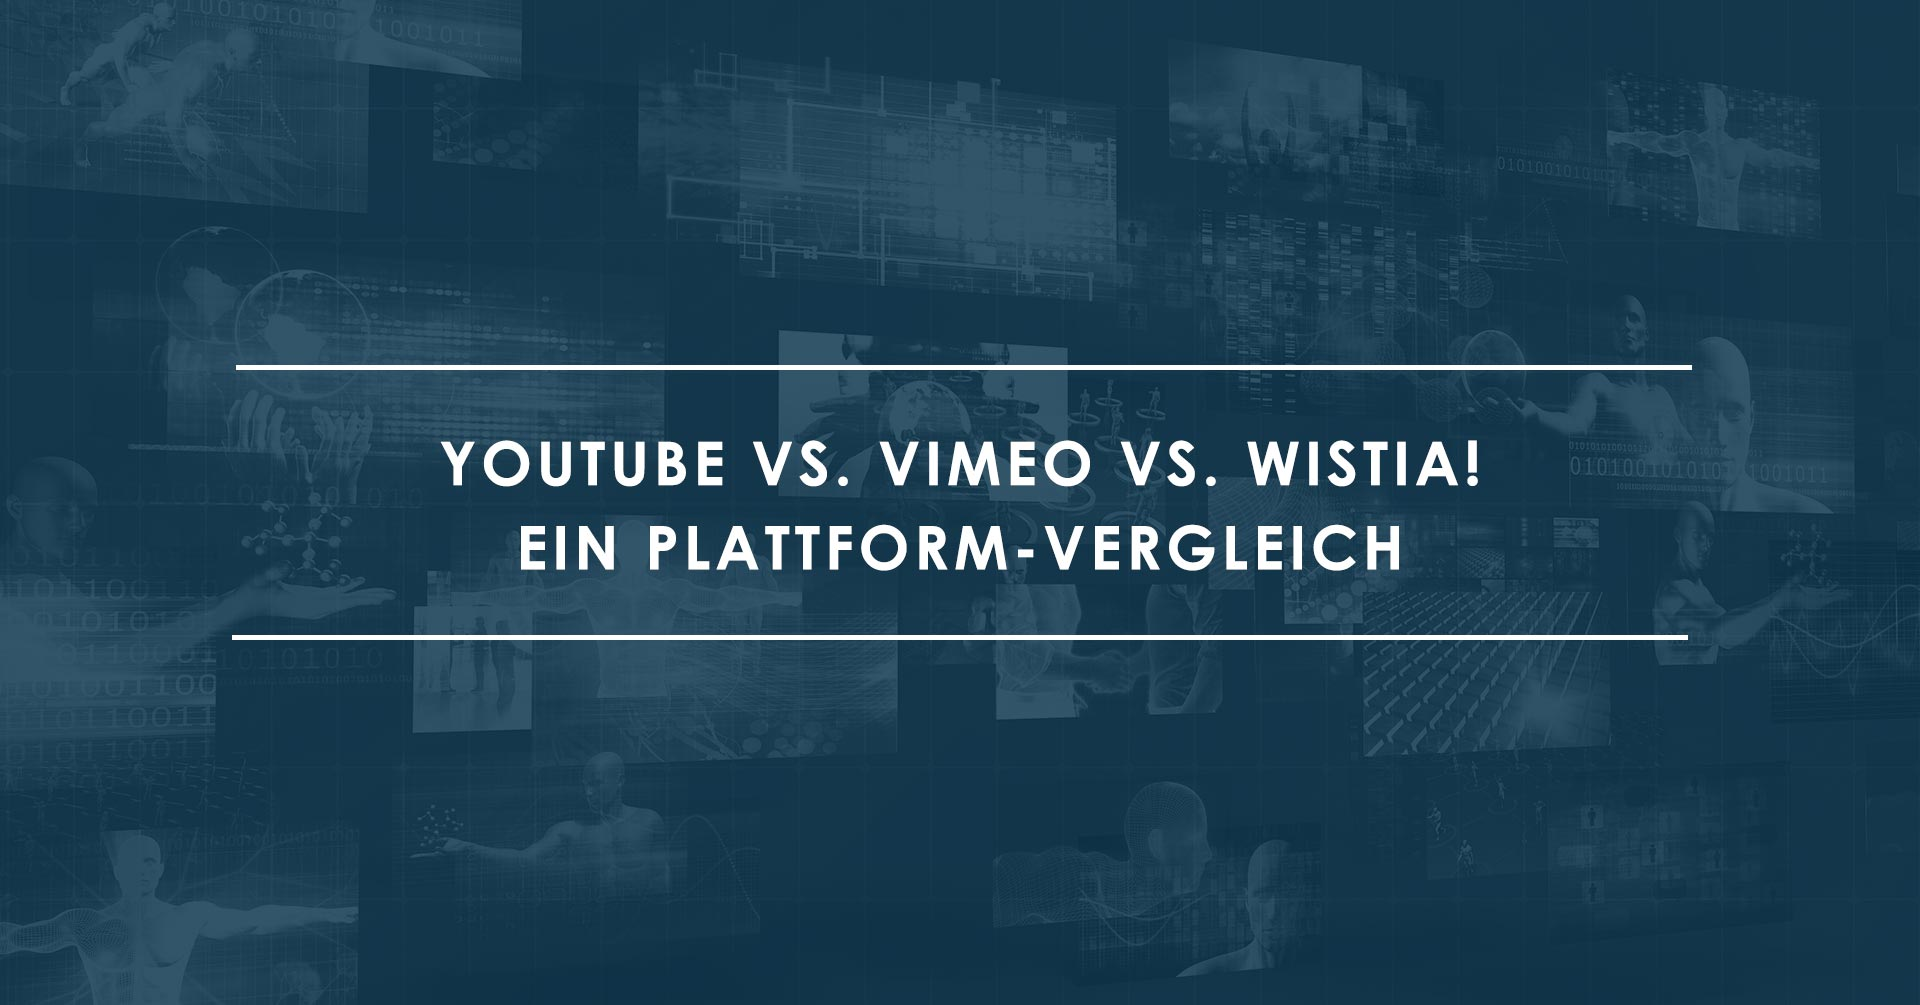 Youtube vs. Vimeo vs. Wistia